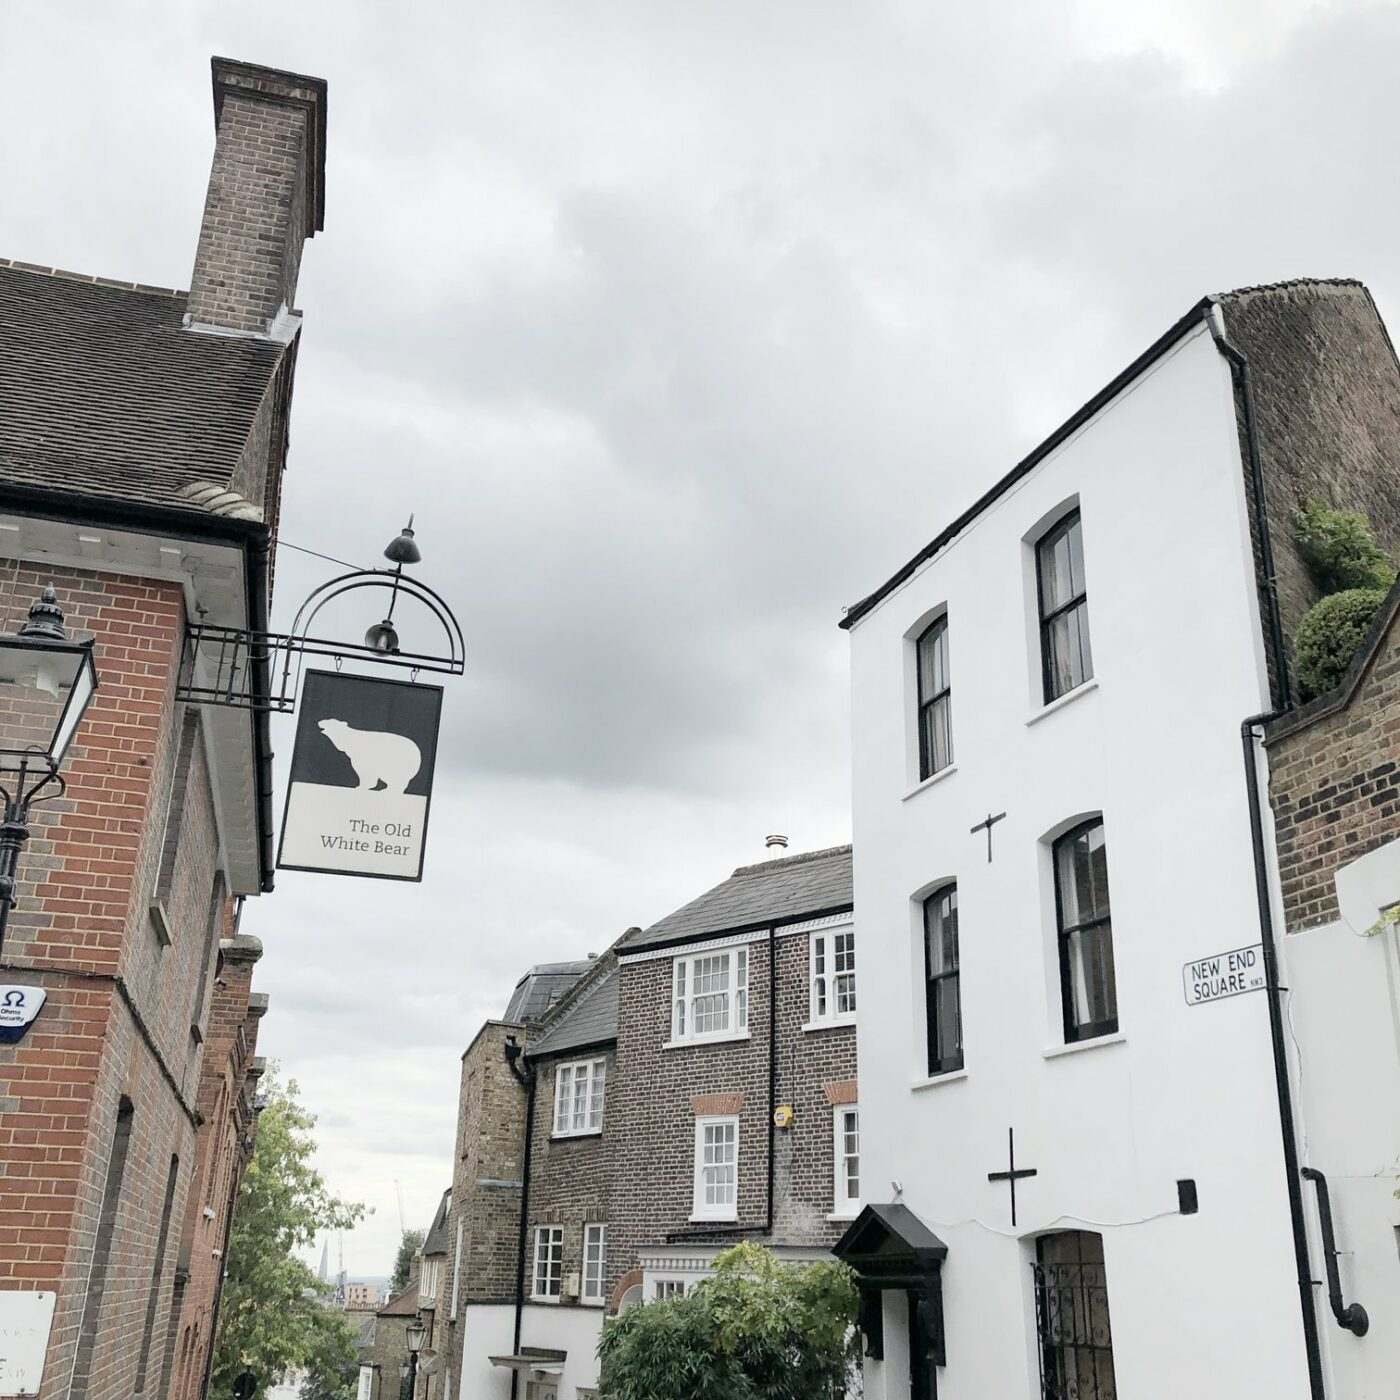 A Slow Guide to Hampstead in Pictures